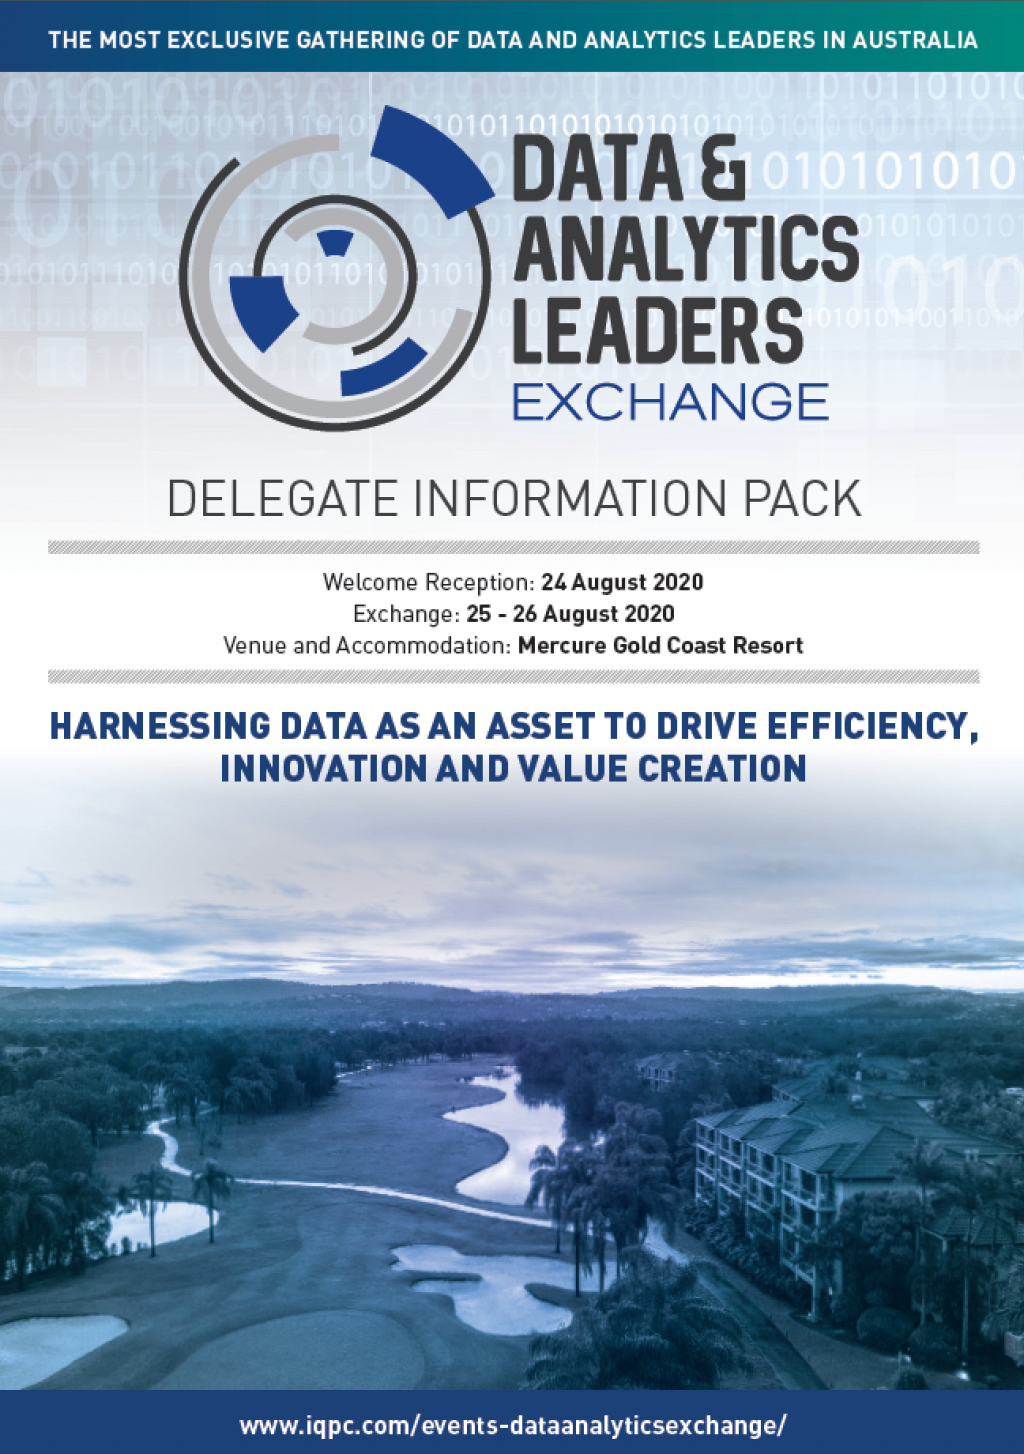 Data & Analytics Leaders Exchange 2020 Agenda